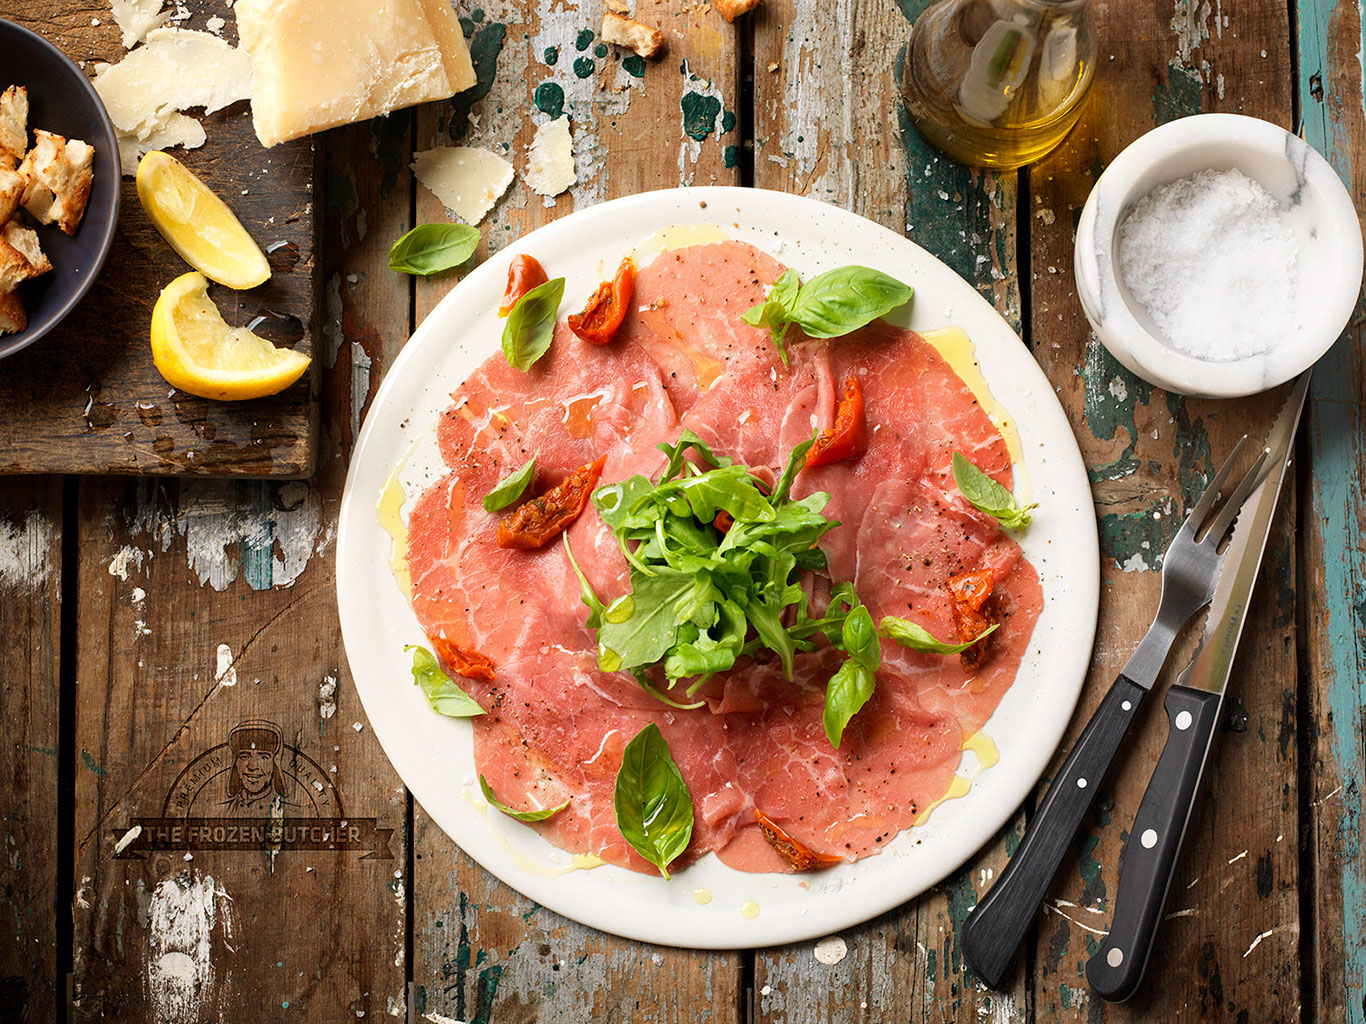 Angus Beef Carpaccio - The Frozen Butcher